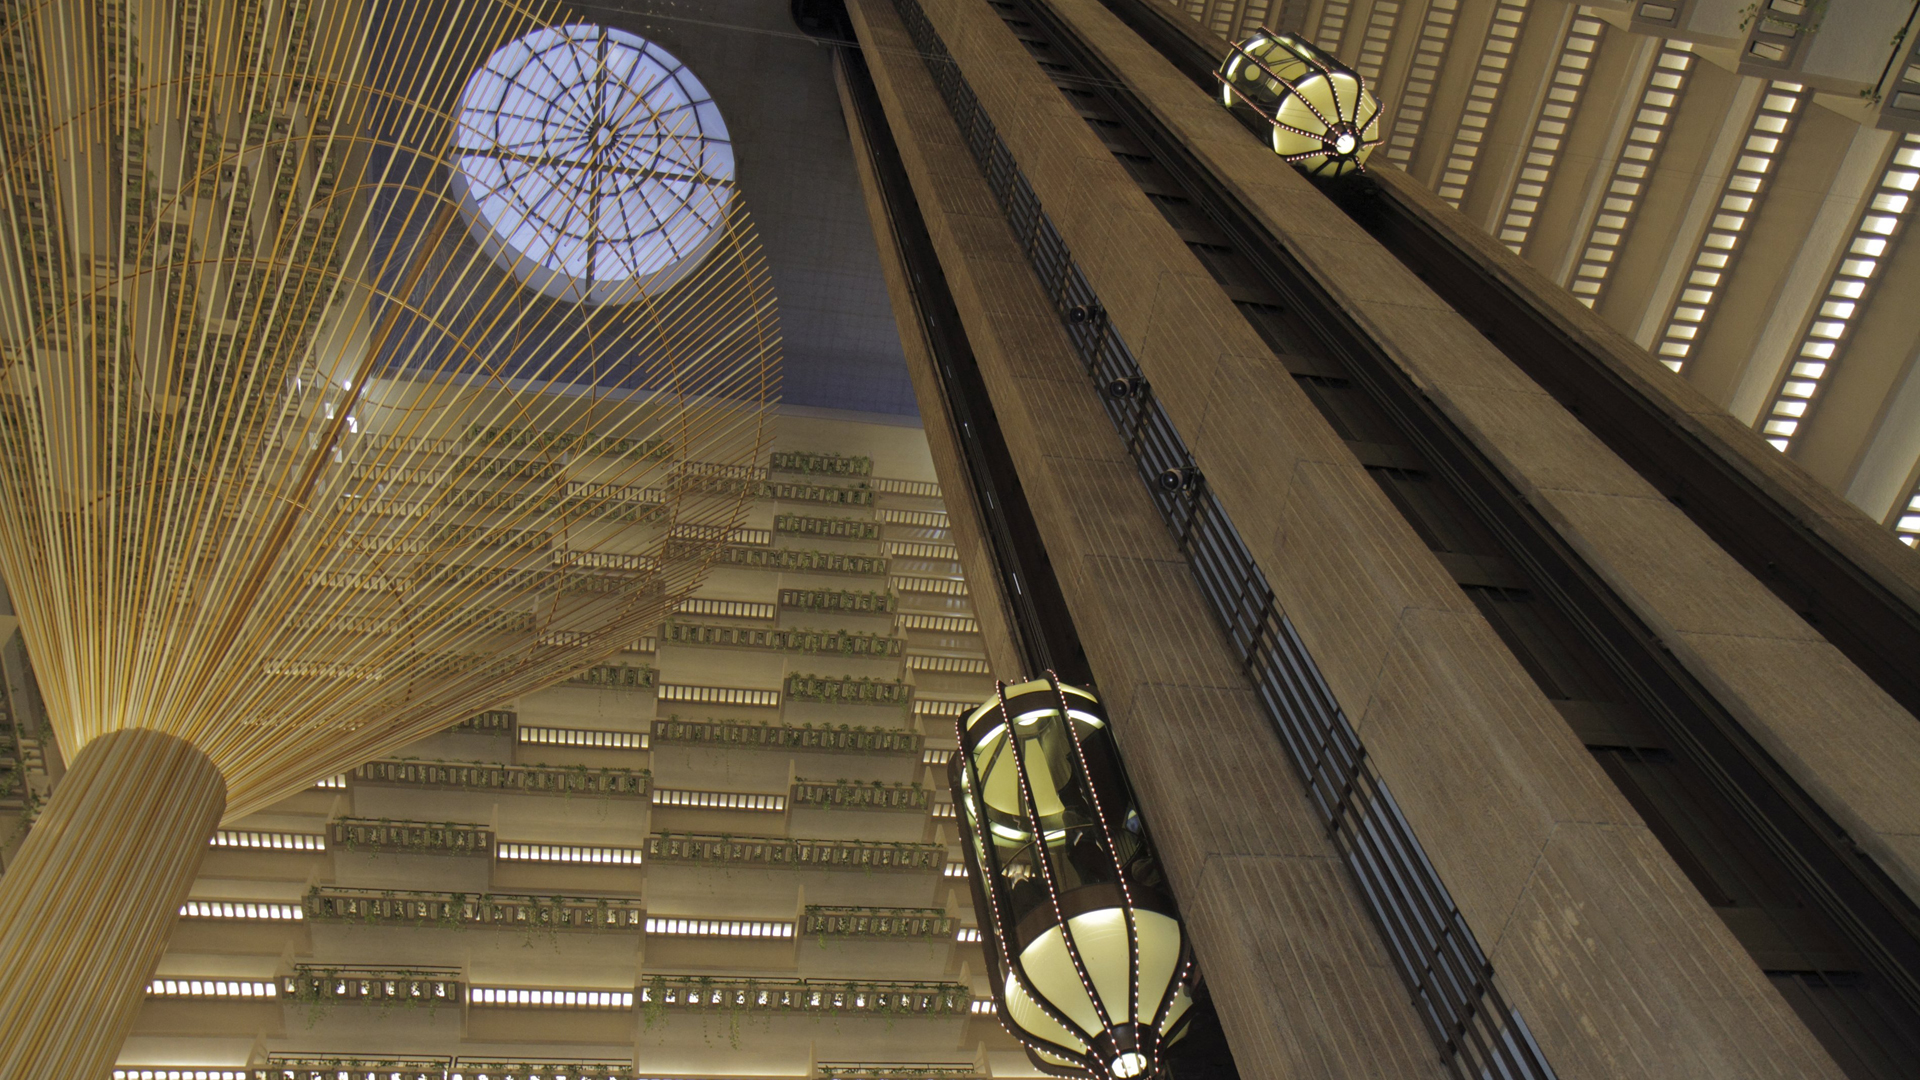 The Hyatt Regency in Atlanta is seen in a file photo. (Credit: Jeff Greenberg/Getty Images)